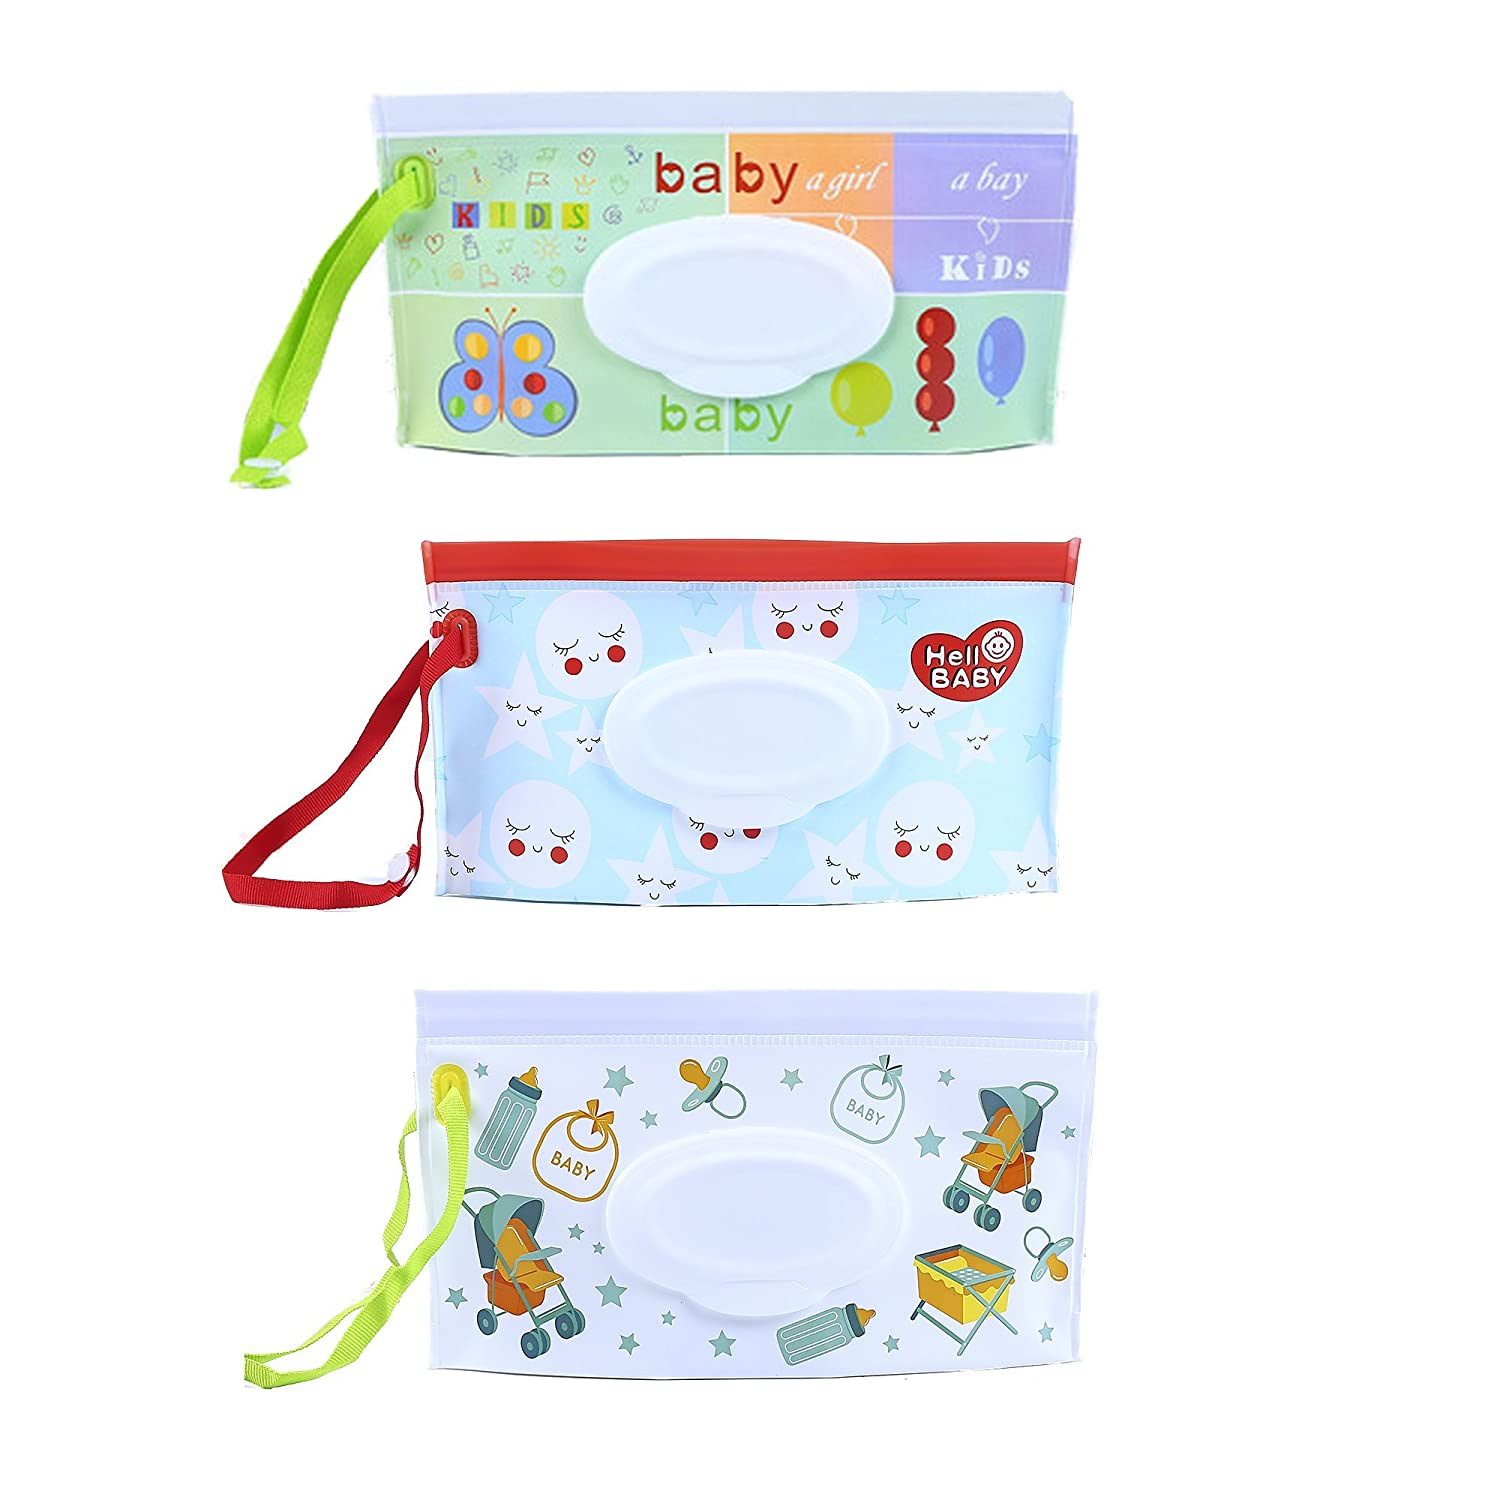 3 PCS Reusable Wet Wipe Pouch Refillable On-The-Go Cases Baby or Personal Wipes Dispenser, Keep Water Wipes Moist for Travel HOOPE